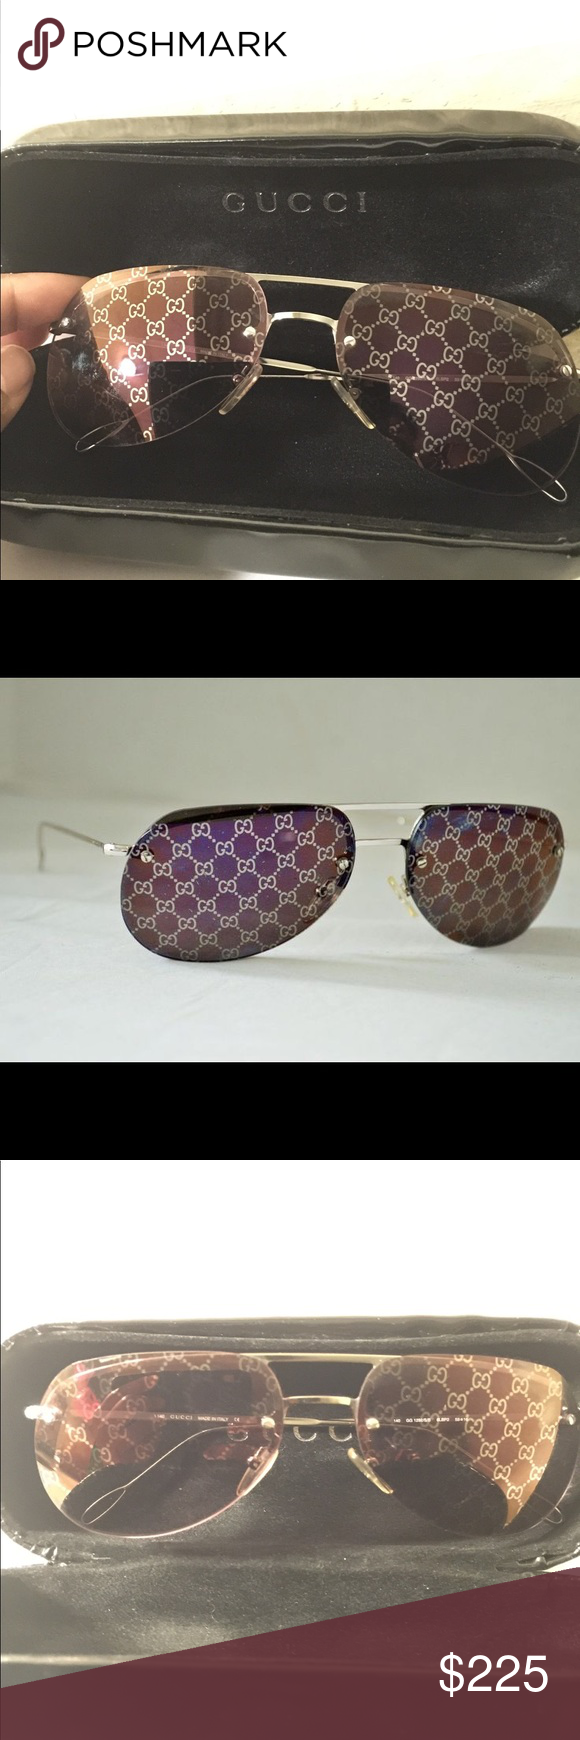 785f5c9ffb9 Gucci Hologram Monogram Sunglasses Vintage Gucci Aviator Sunglasses with  hologram monogrammed lenses. Silver hardware. In excellent condition.